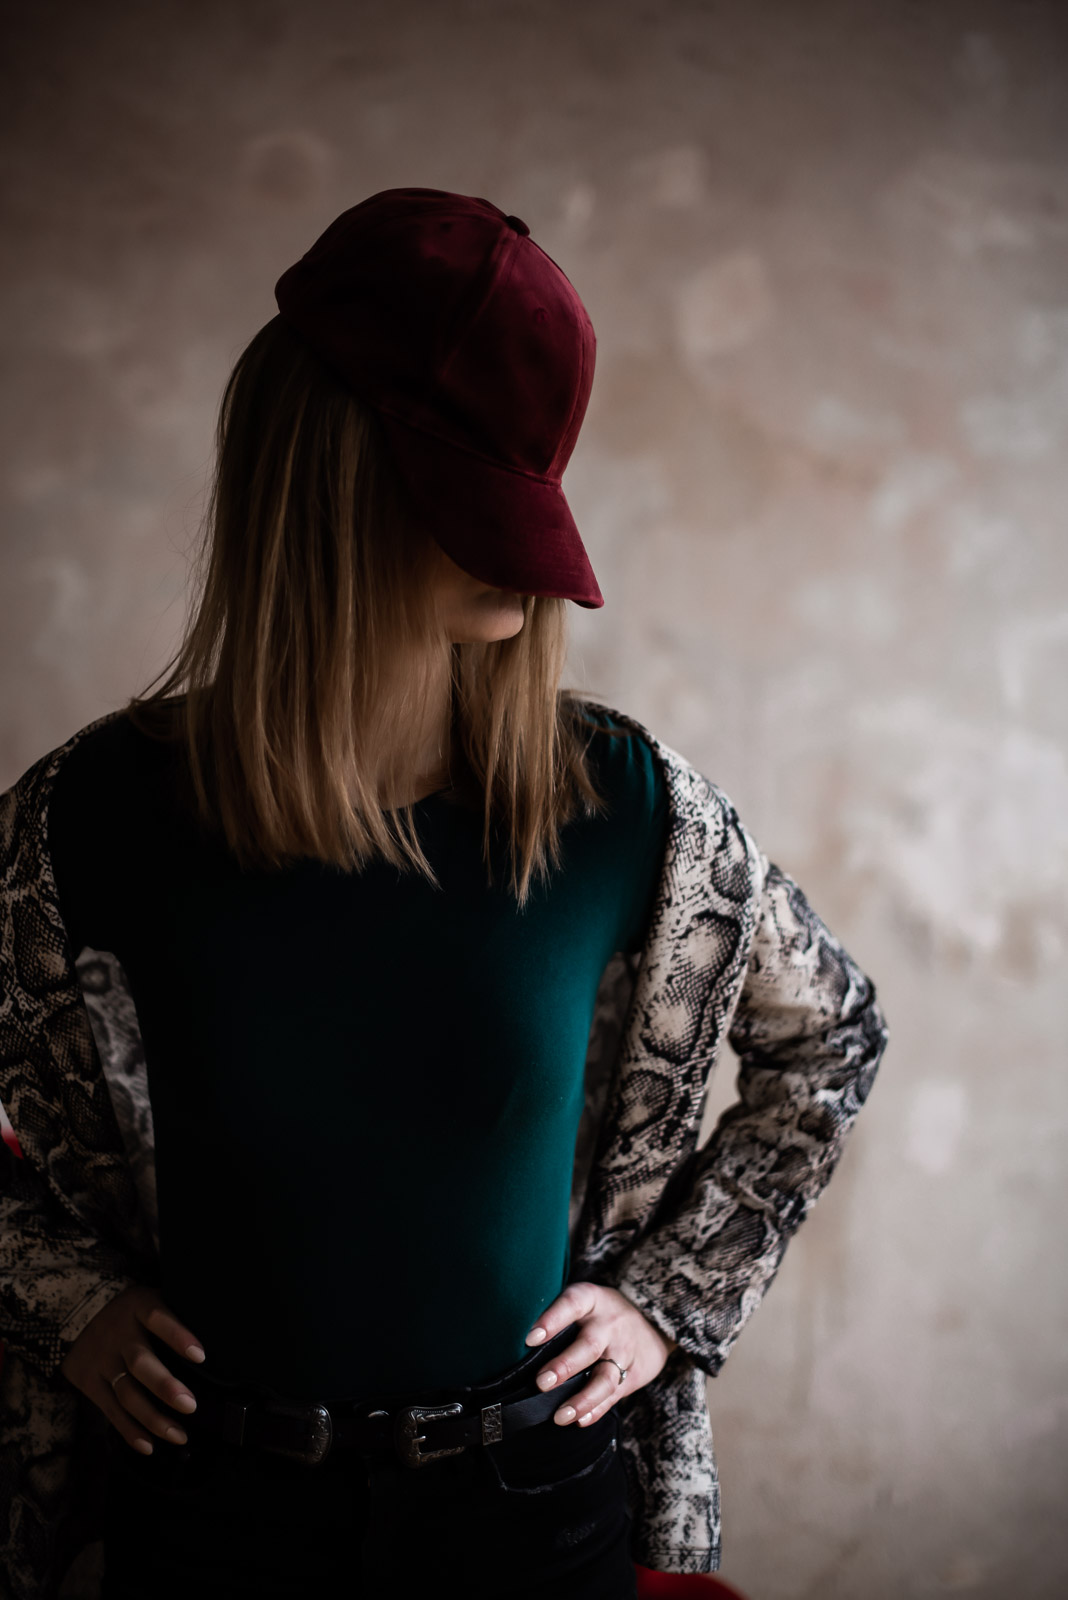 girl in snake print blazer and emerald top covering her face with baseball cap